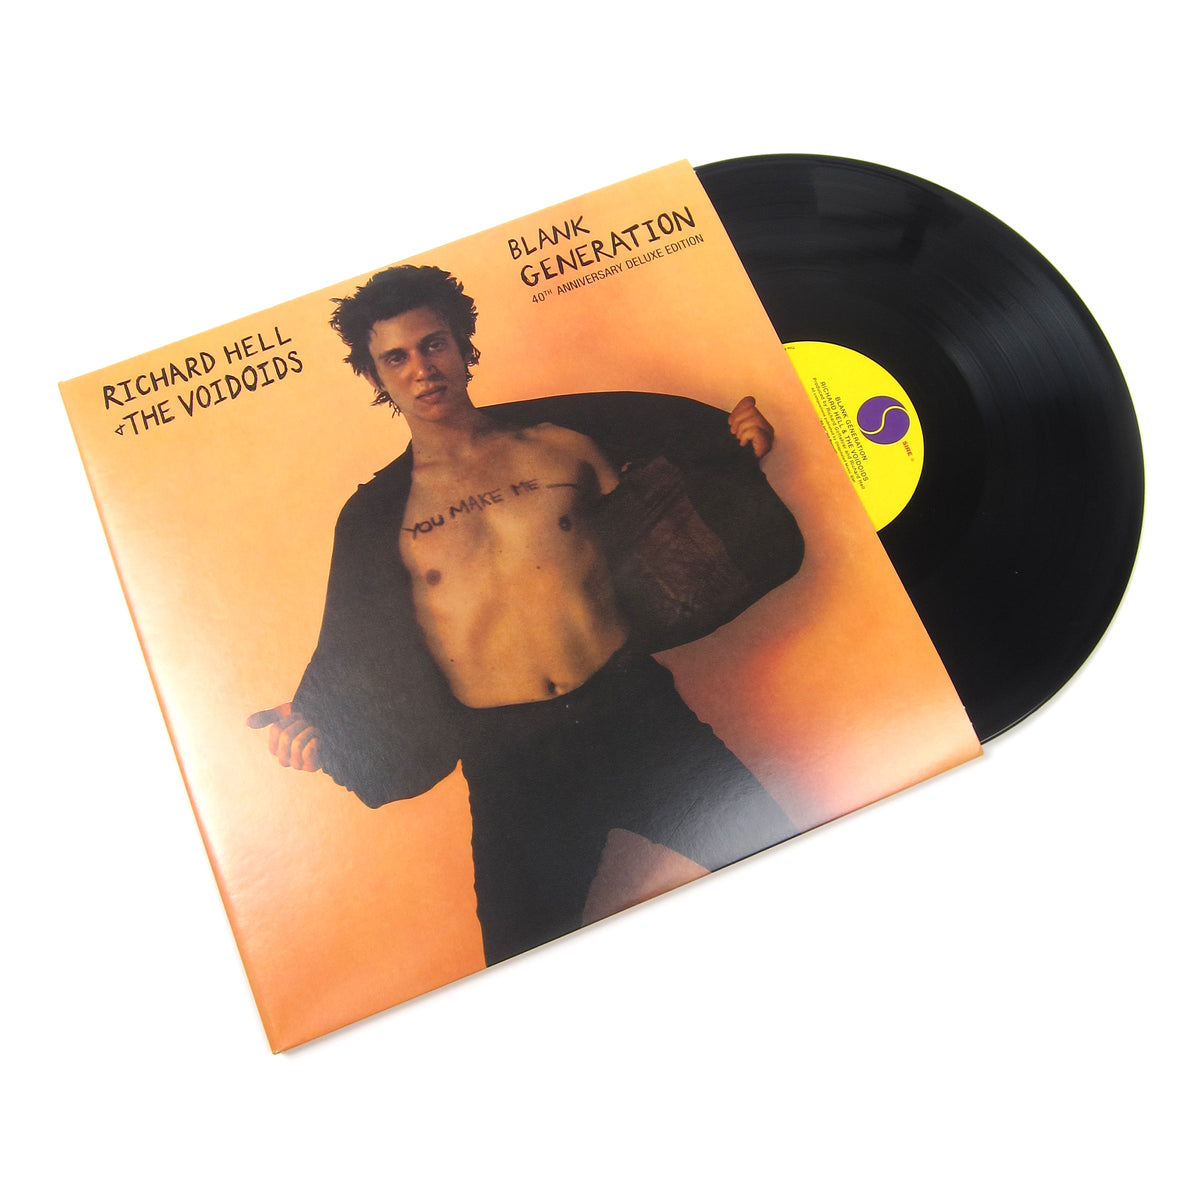 Richard Hell & The Voidoids : Blank Generation 40th Anniversary Deluxe Edition Vinyl 2LP (Record Store Day)